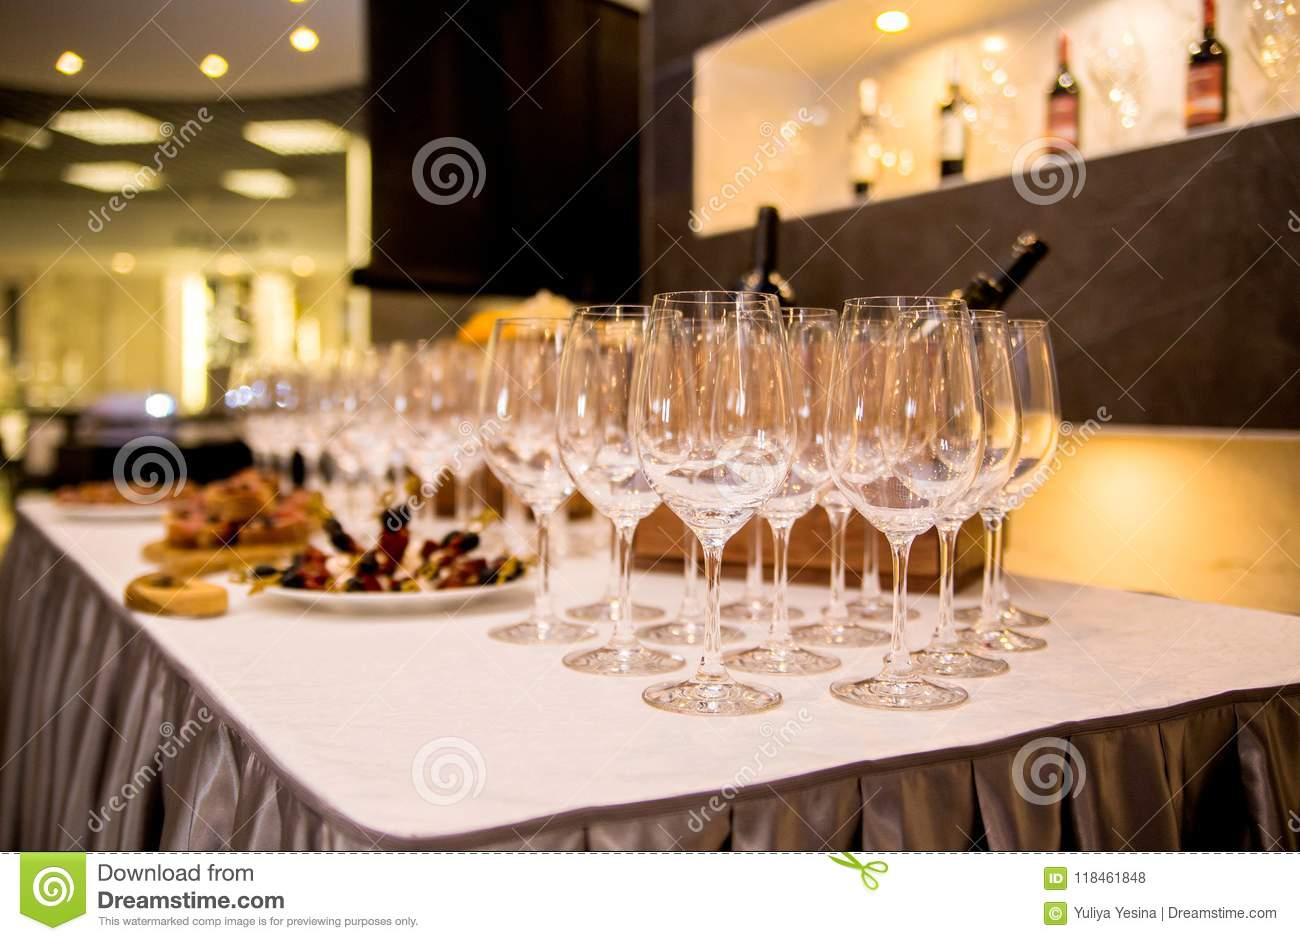 The table is covered with appetizers and glasses for wine